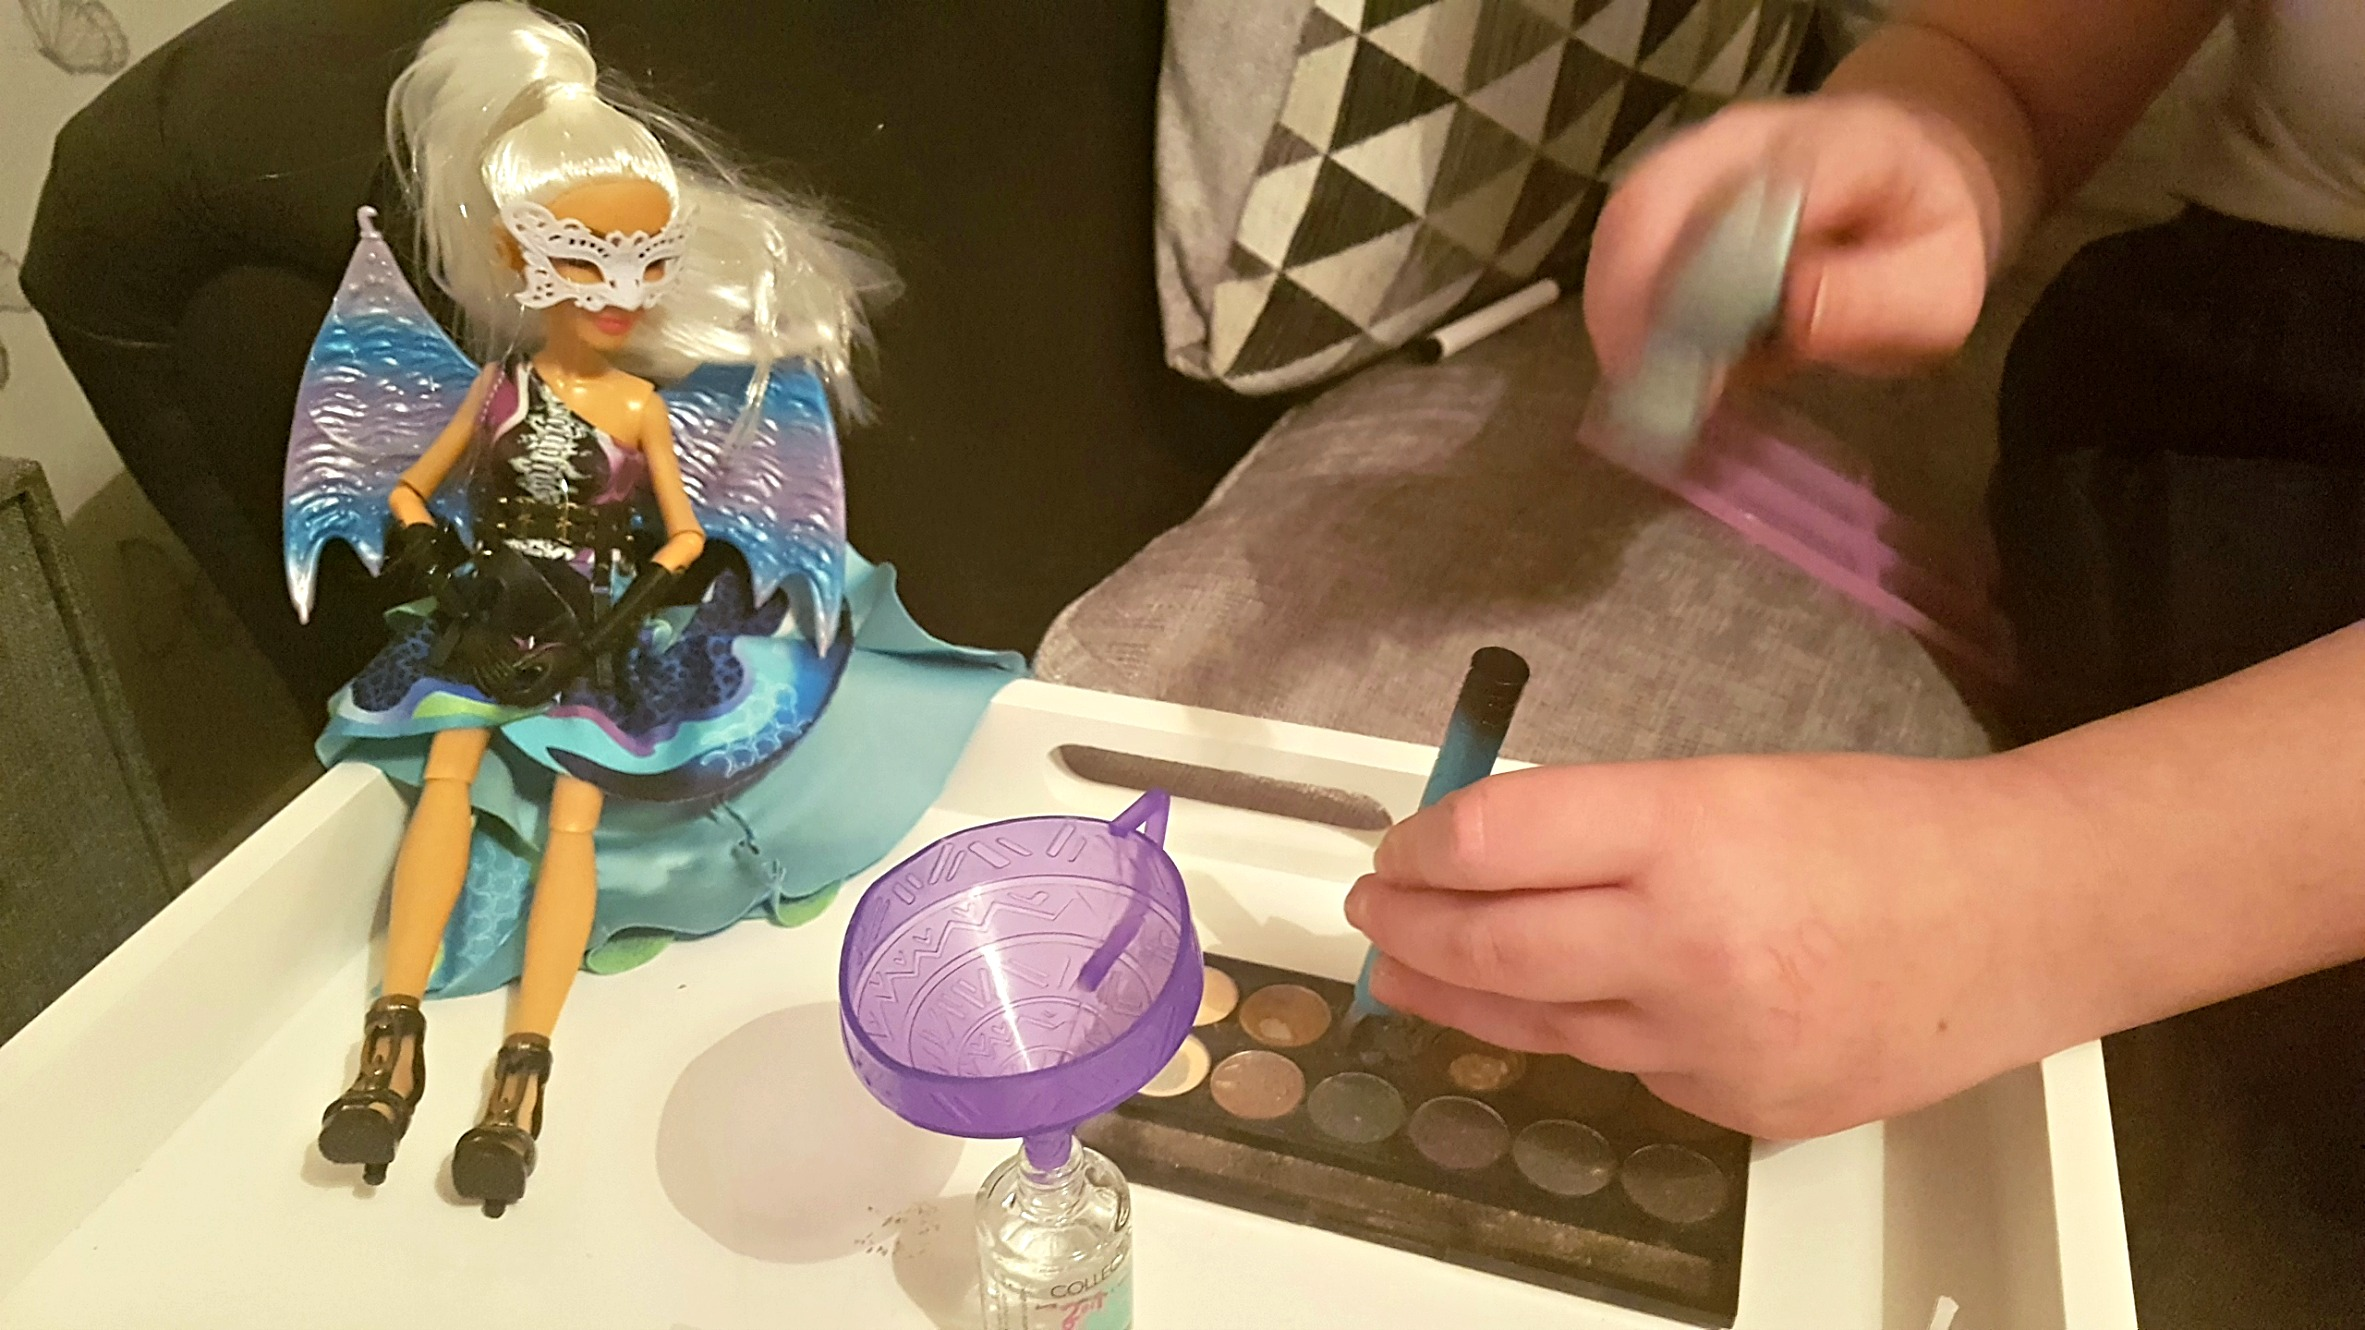 project mc2 experiement doll camryn and girl using a plastic hammer on eye shadow